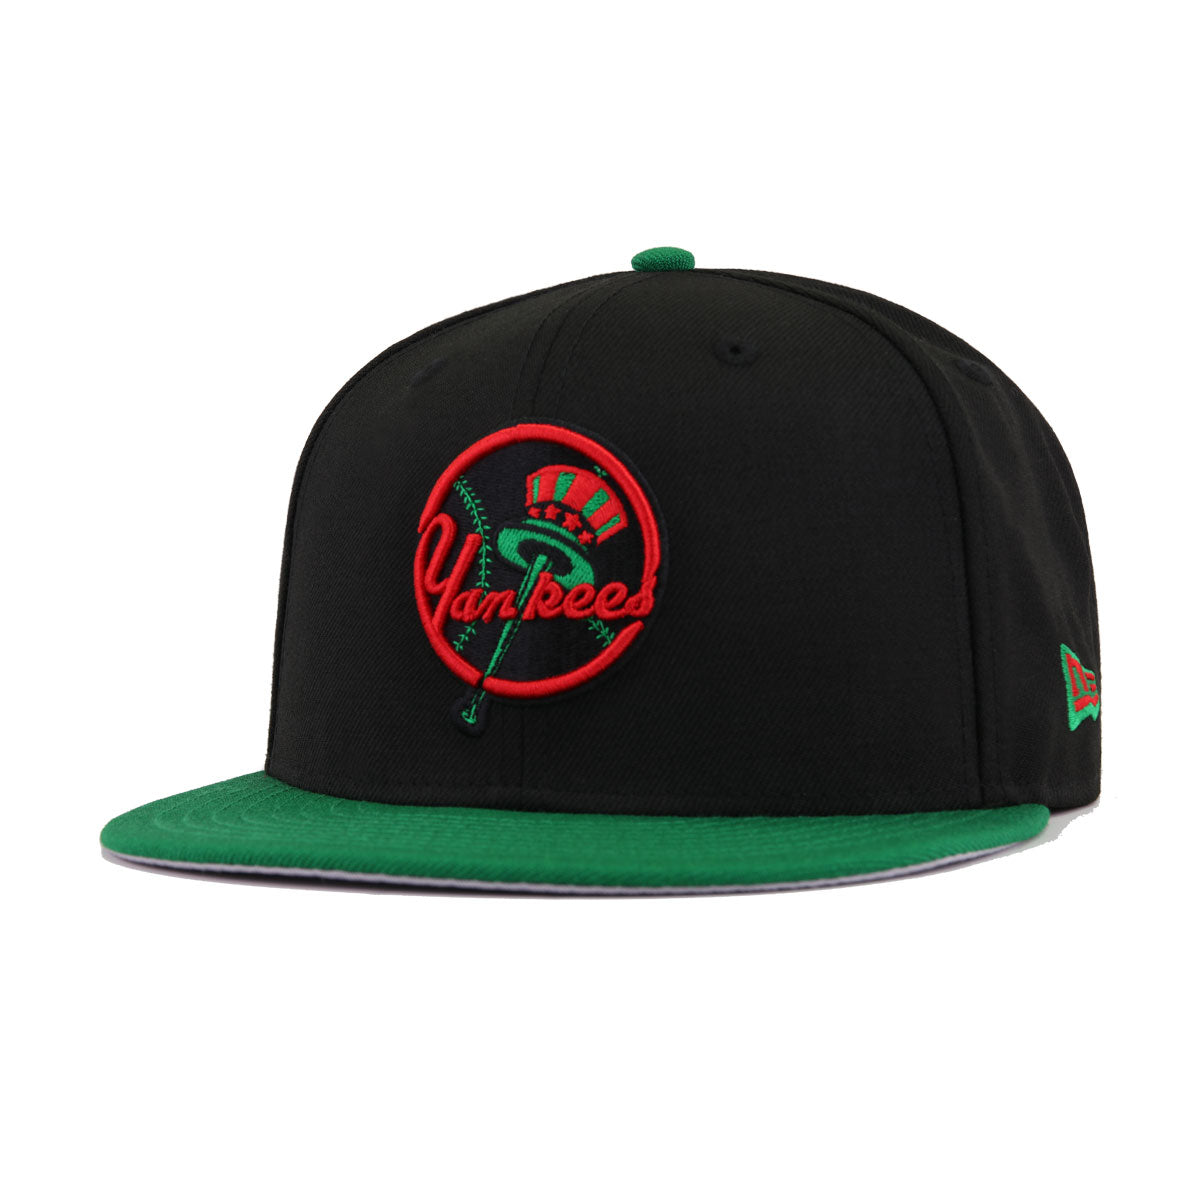 0db7e228ab1 New York Yankees Black Kelly Green New Era 9Fifty Snapback